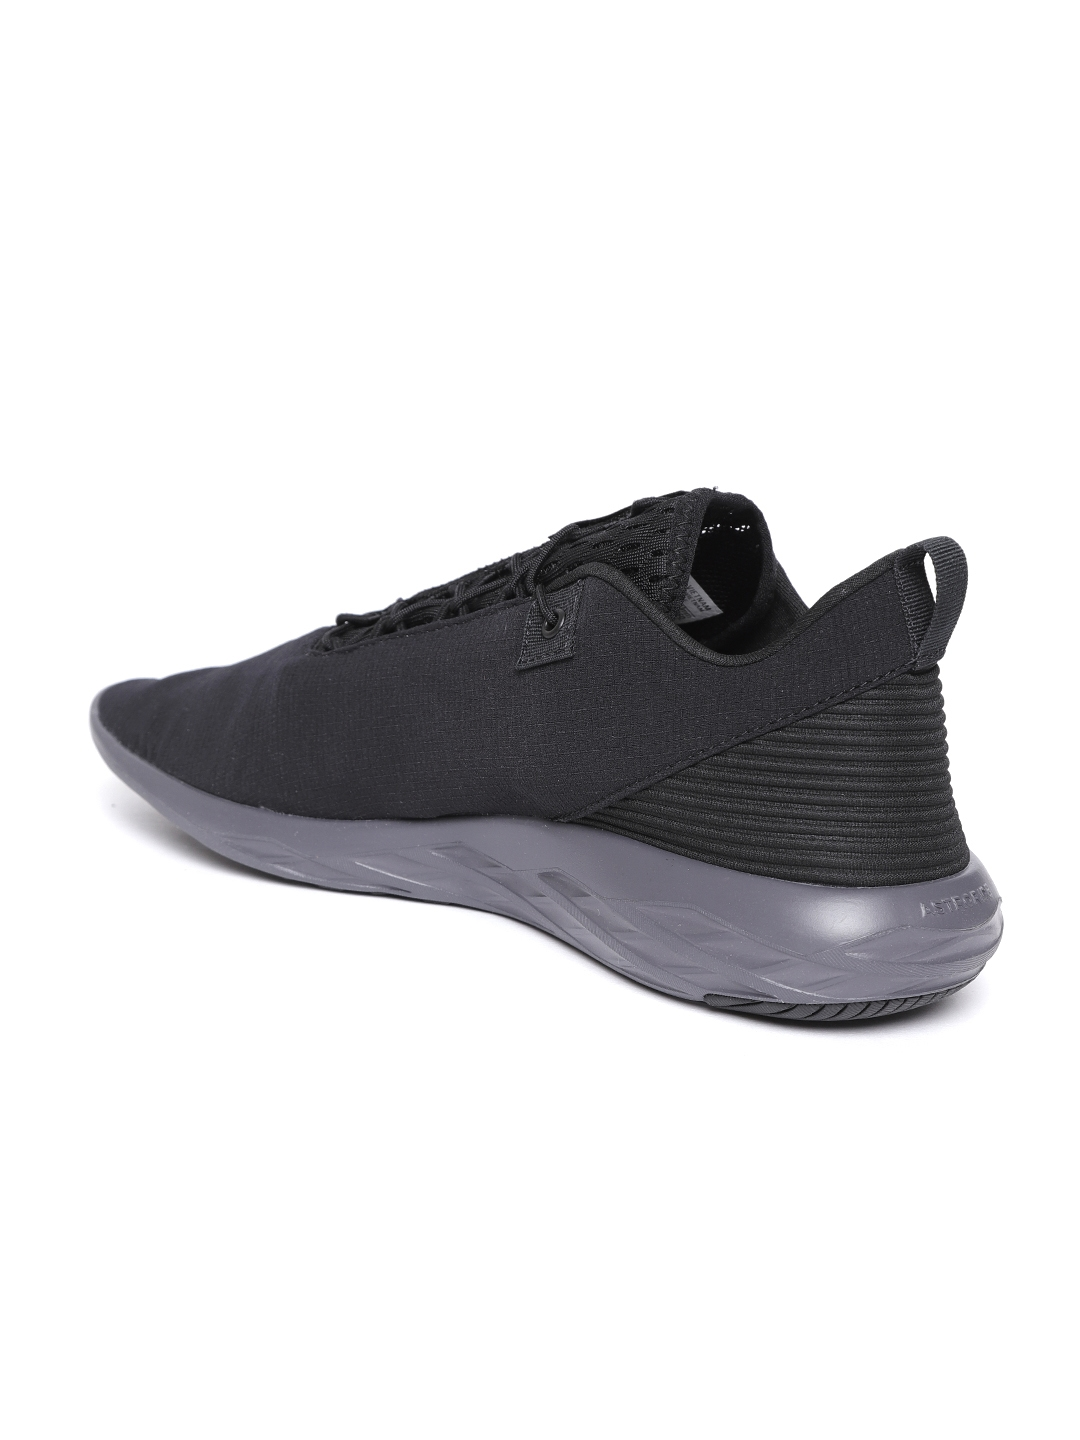 05d8f47f0 Buy Reebok Men Black Astro Flex & Fold Walking Shoes - Sports Shoes ...